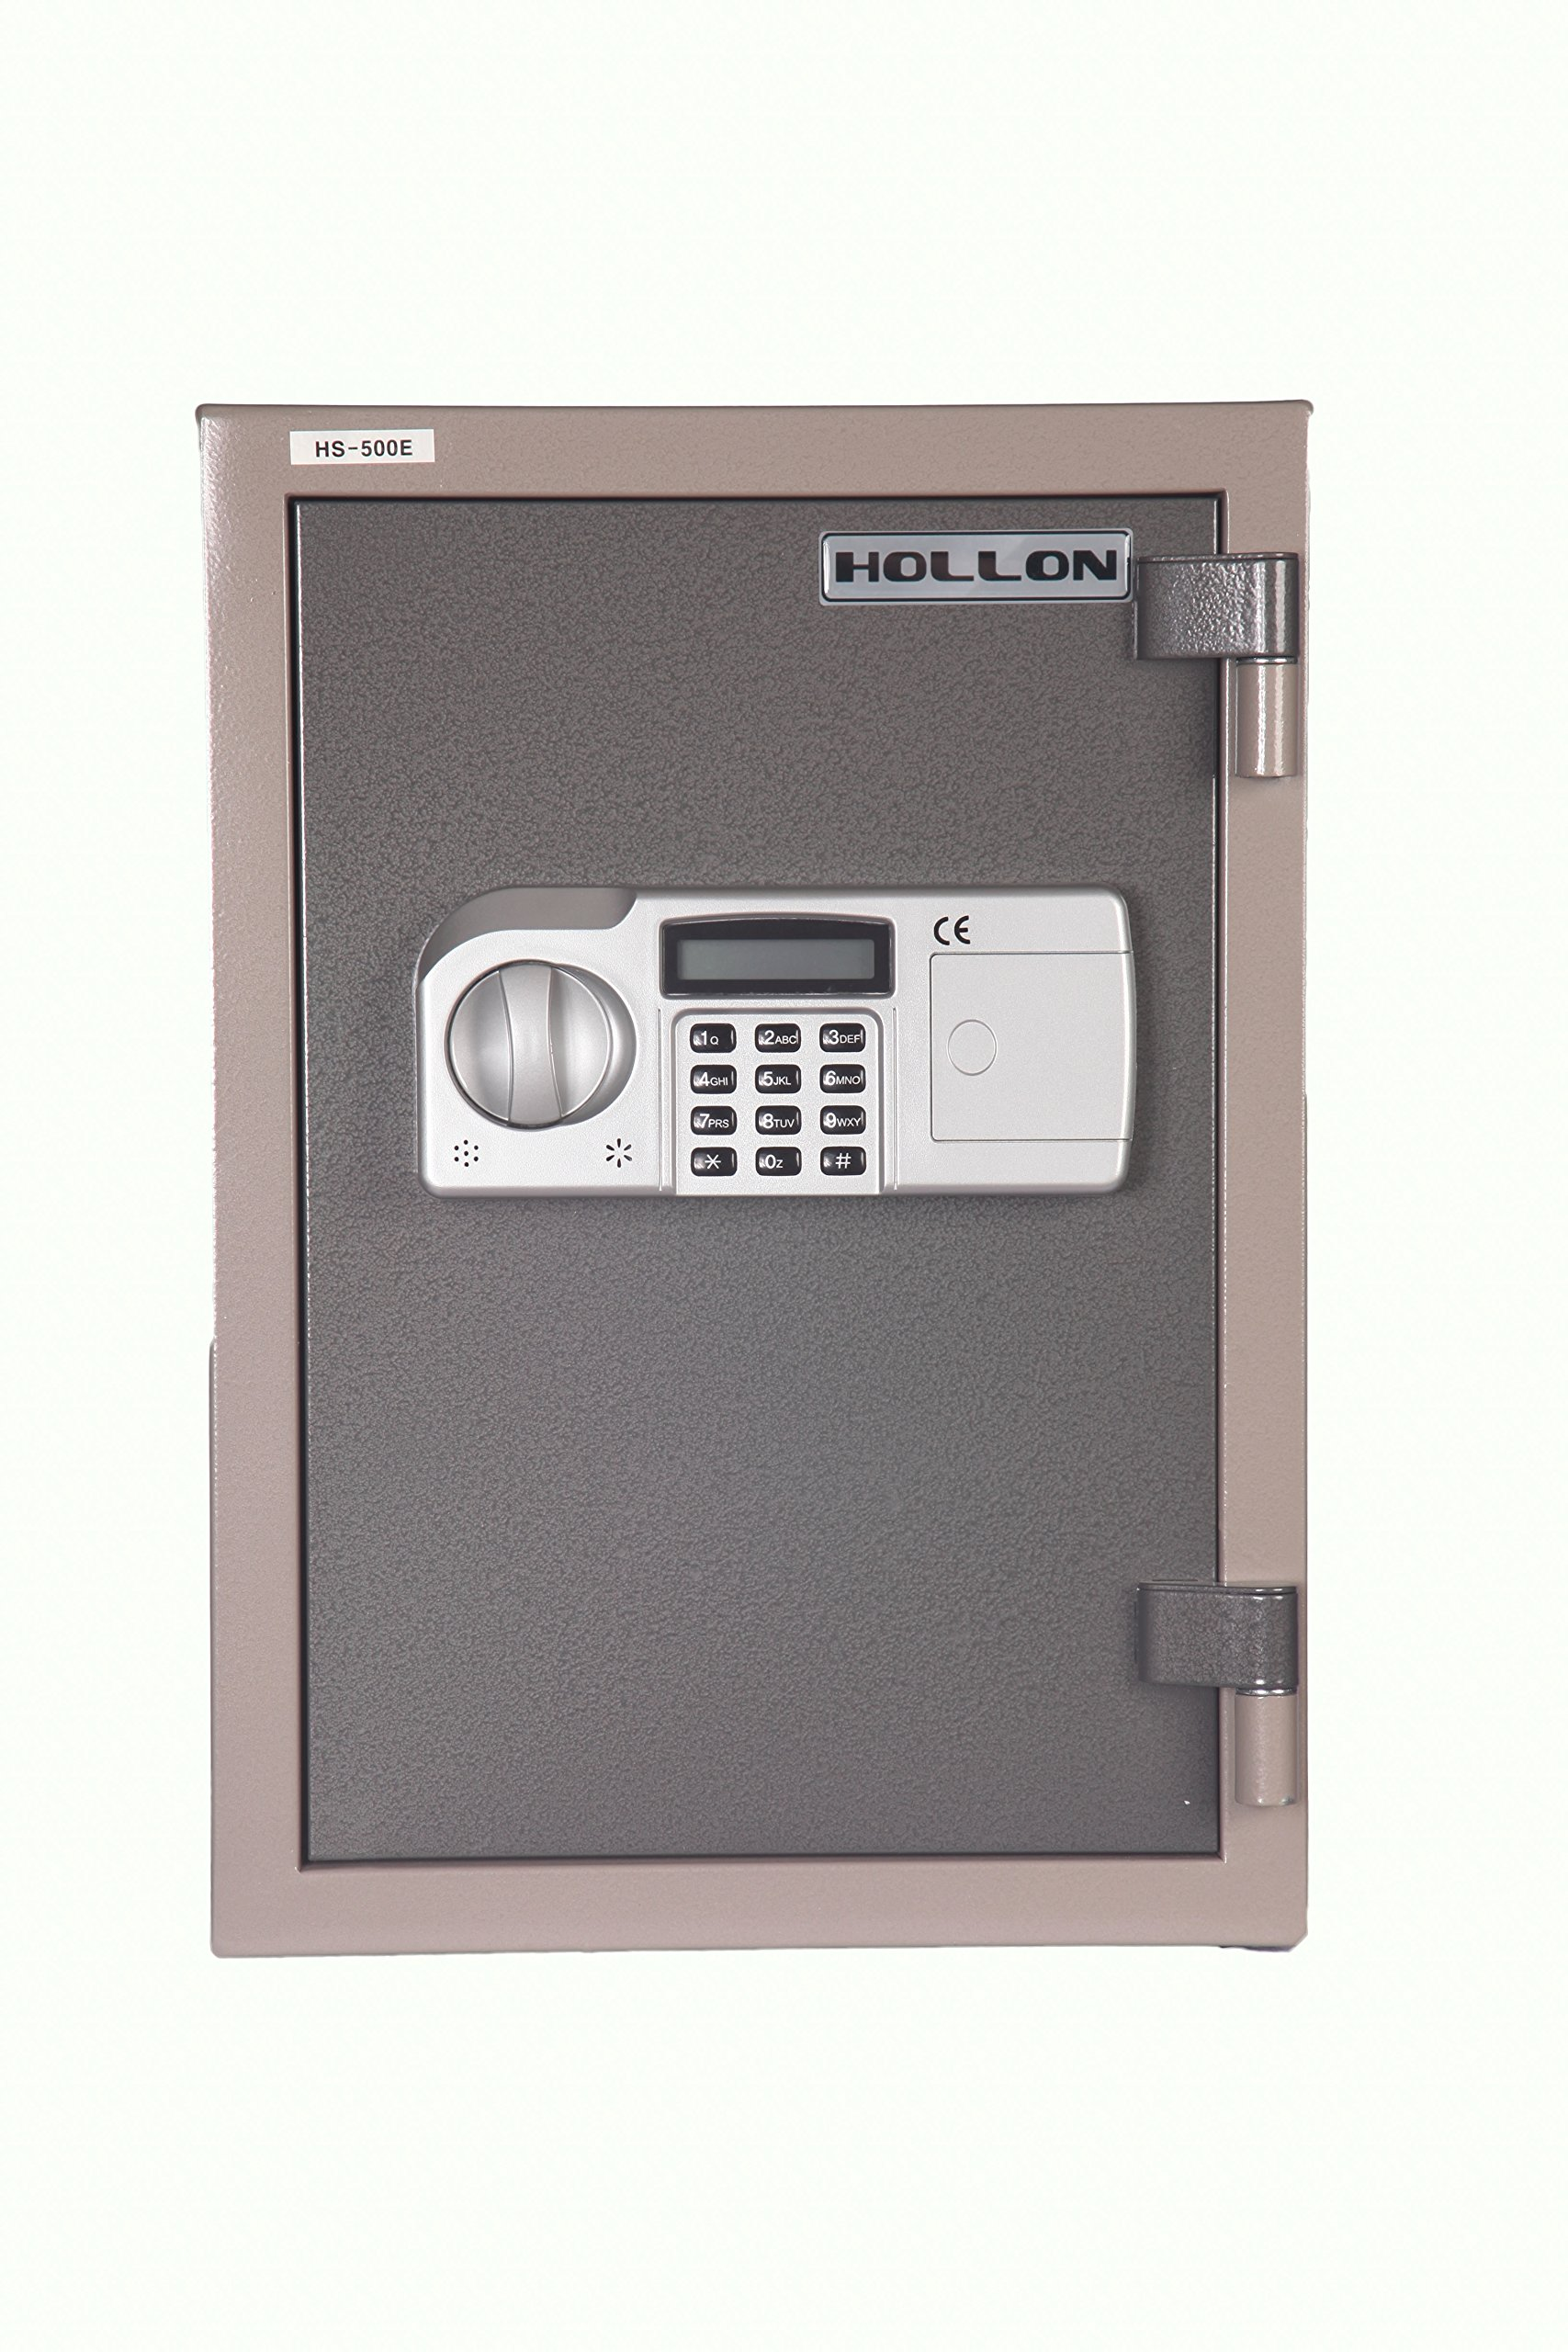 Hollon HS-500E 2 Hour Fire Proof Electronic Home Safe by Hollon